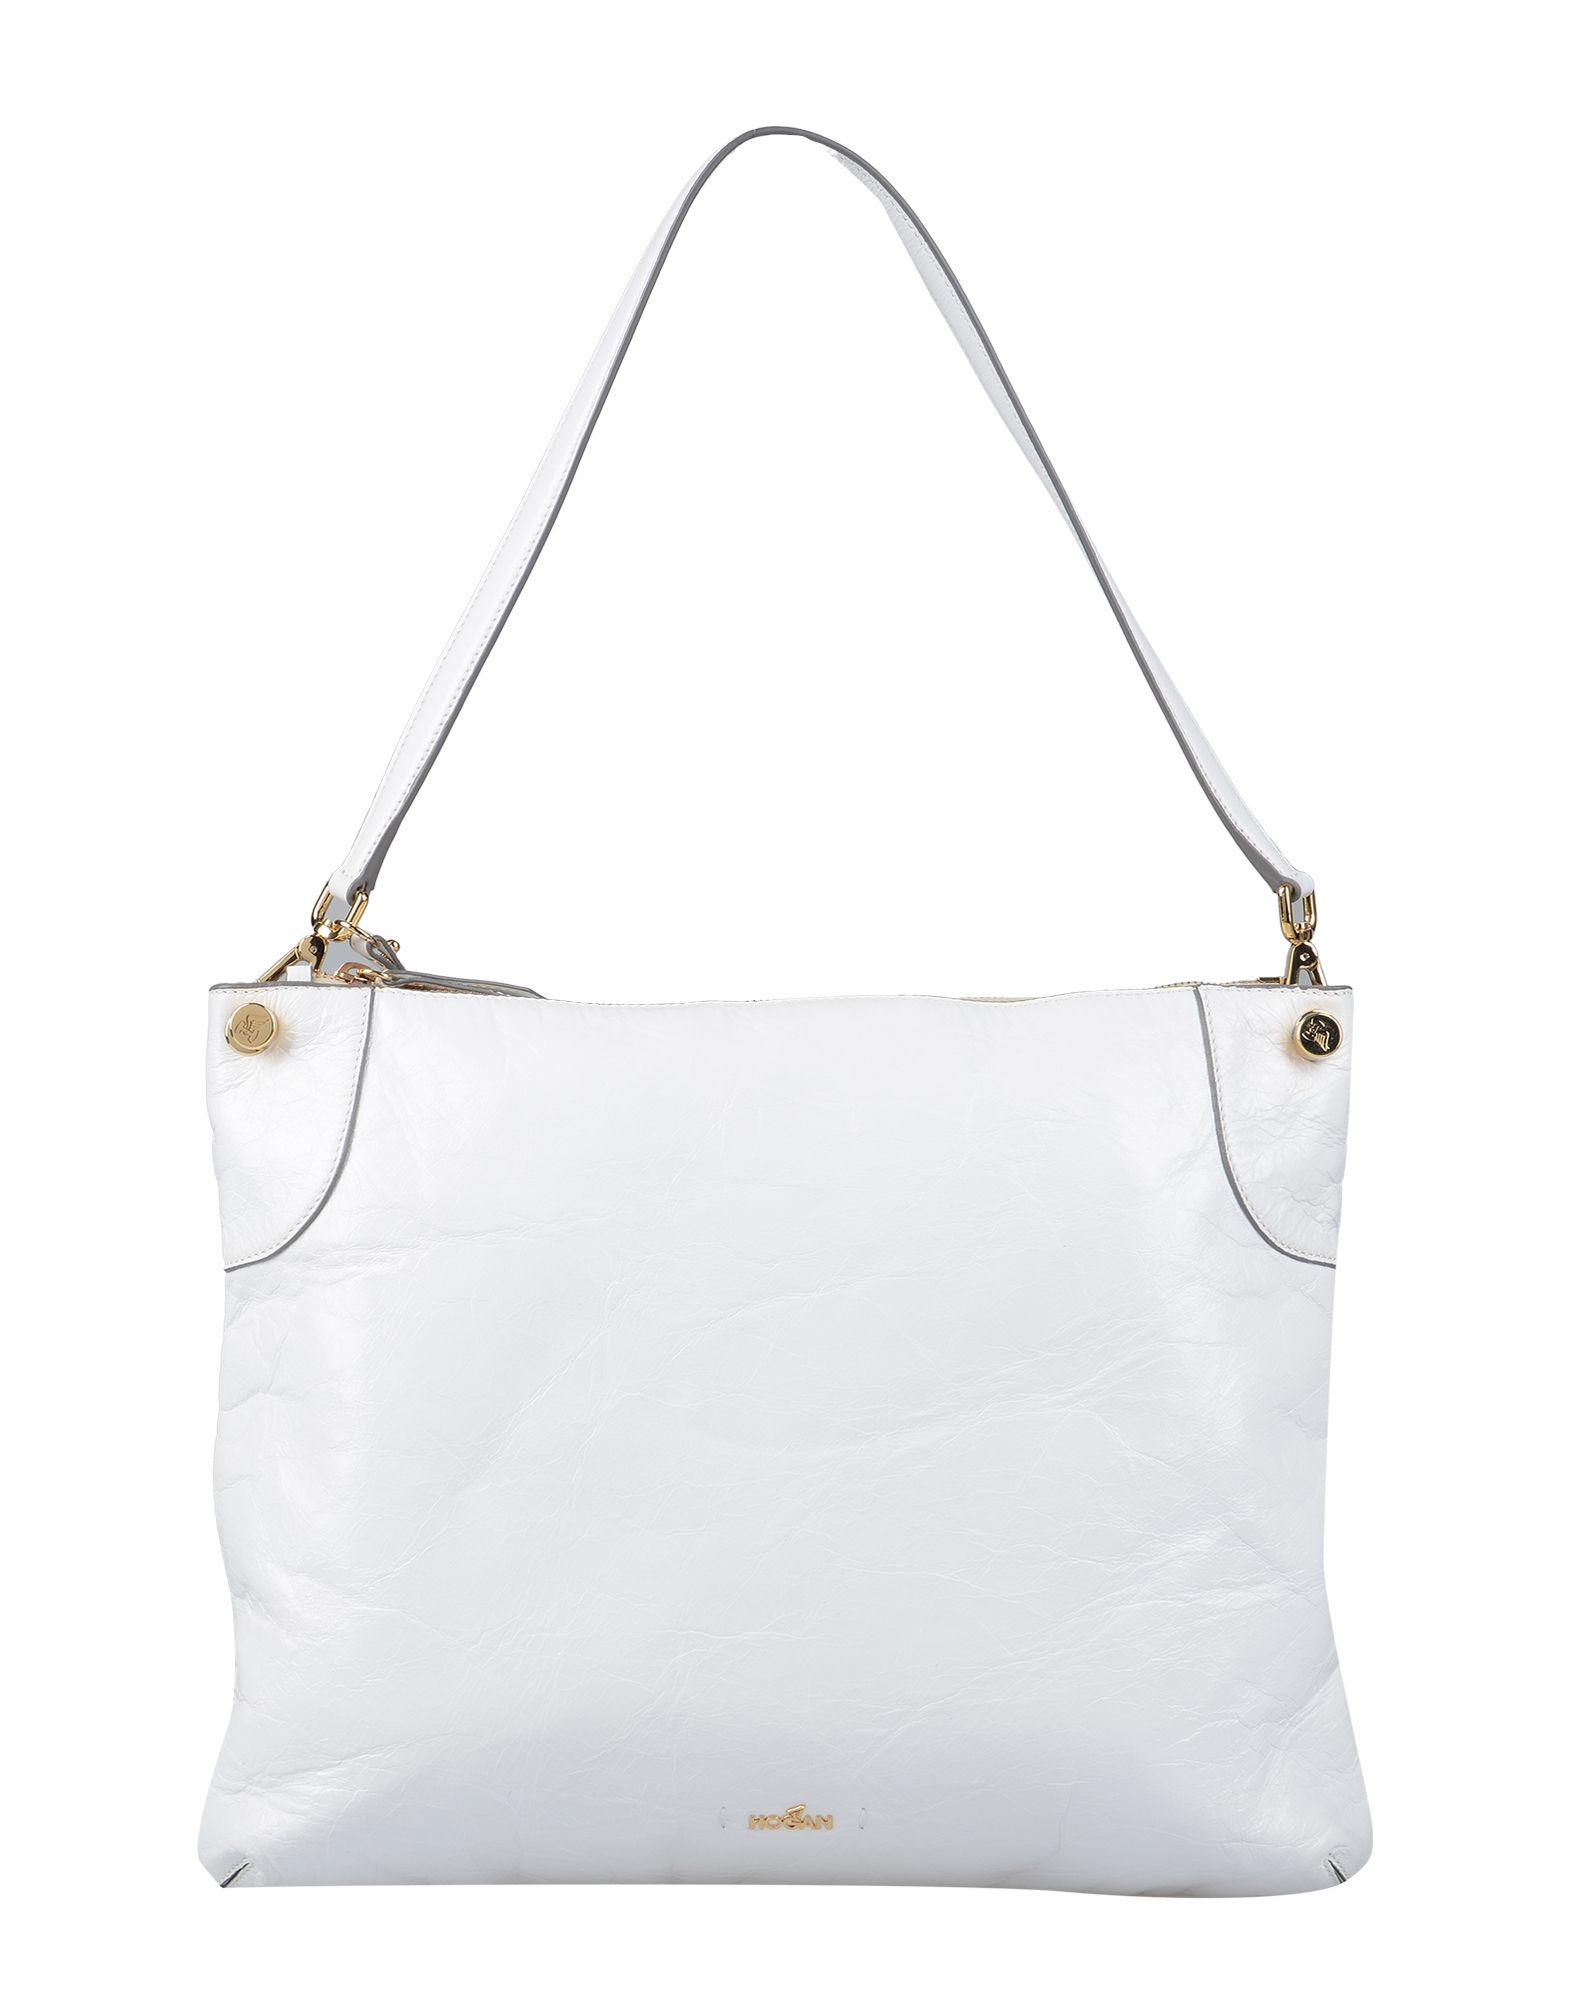 Hogan Shoulder Bag in White - Lyst d2e69a5e20099